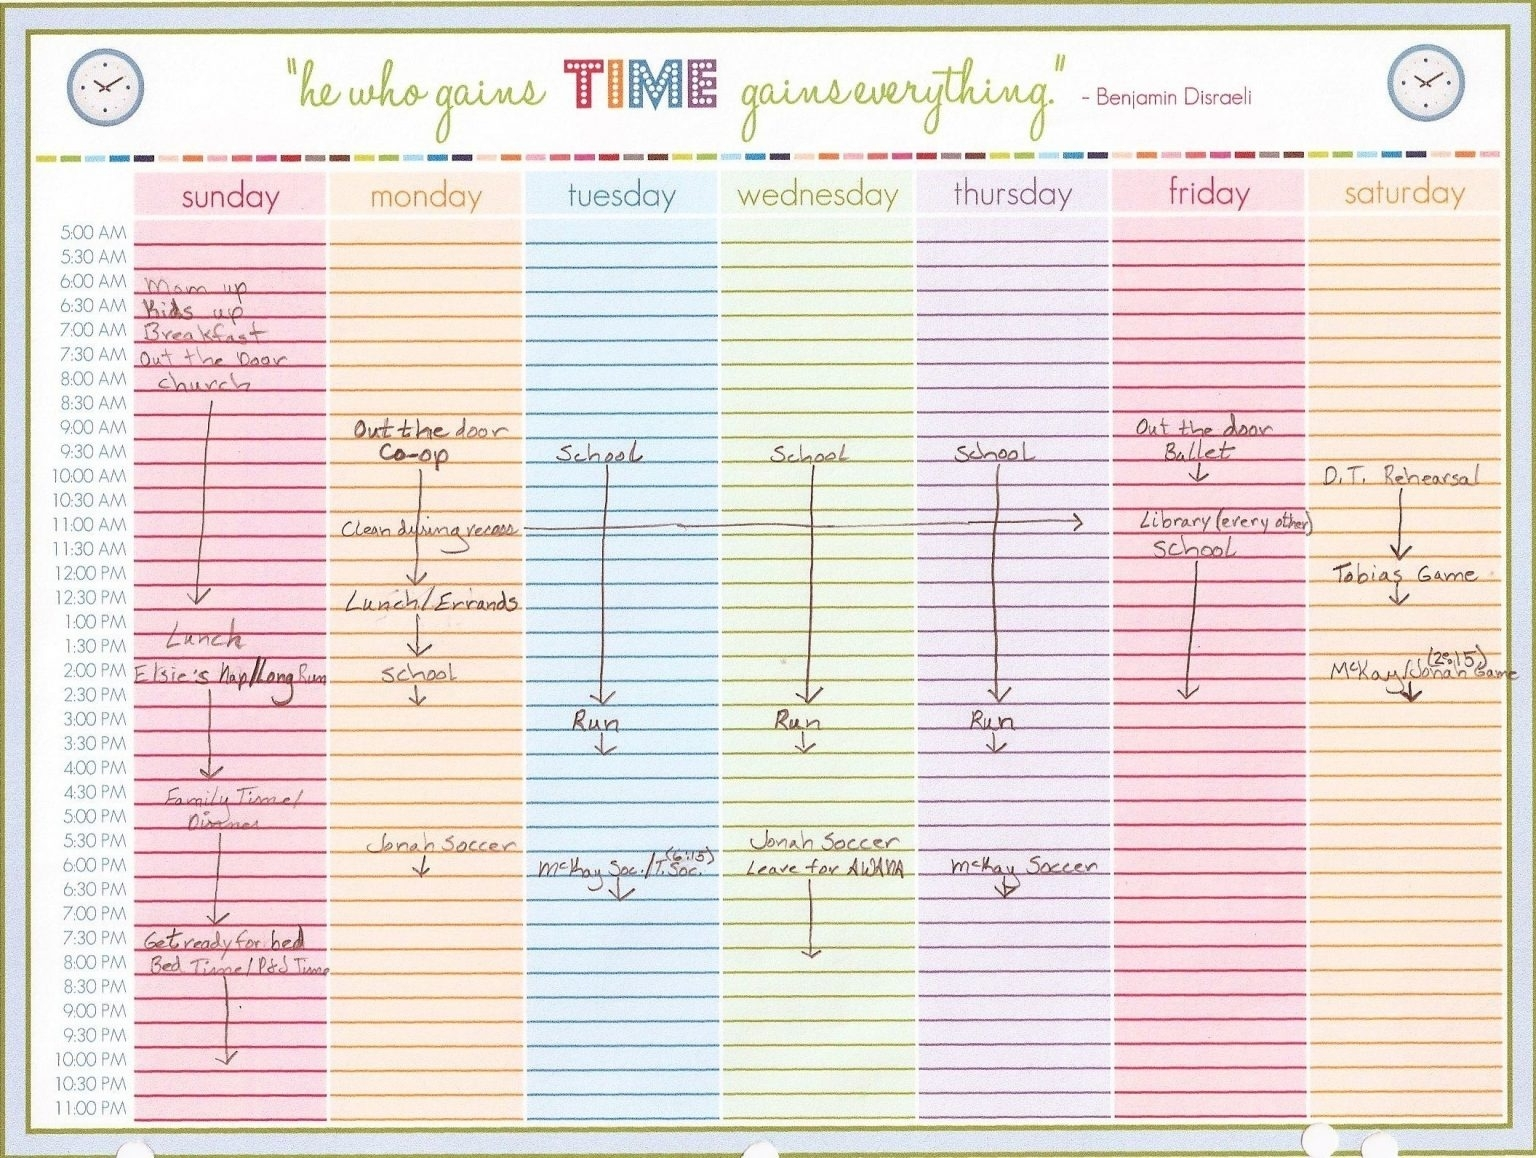 Weekly Calendar Template With Time Slots Free Download - Calendar Template 2021